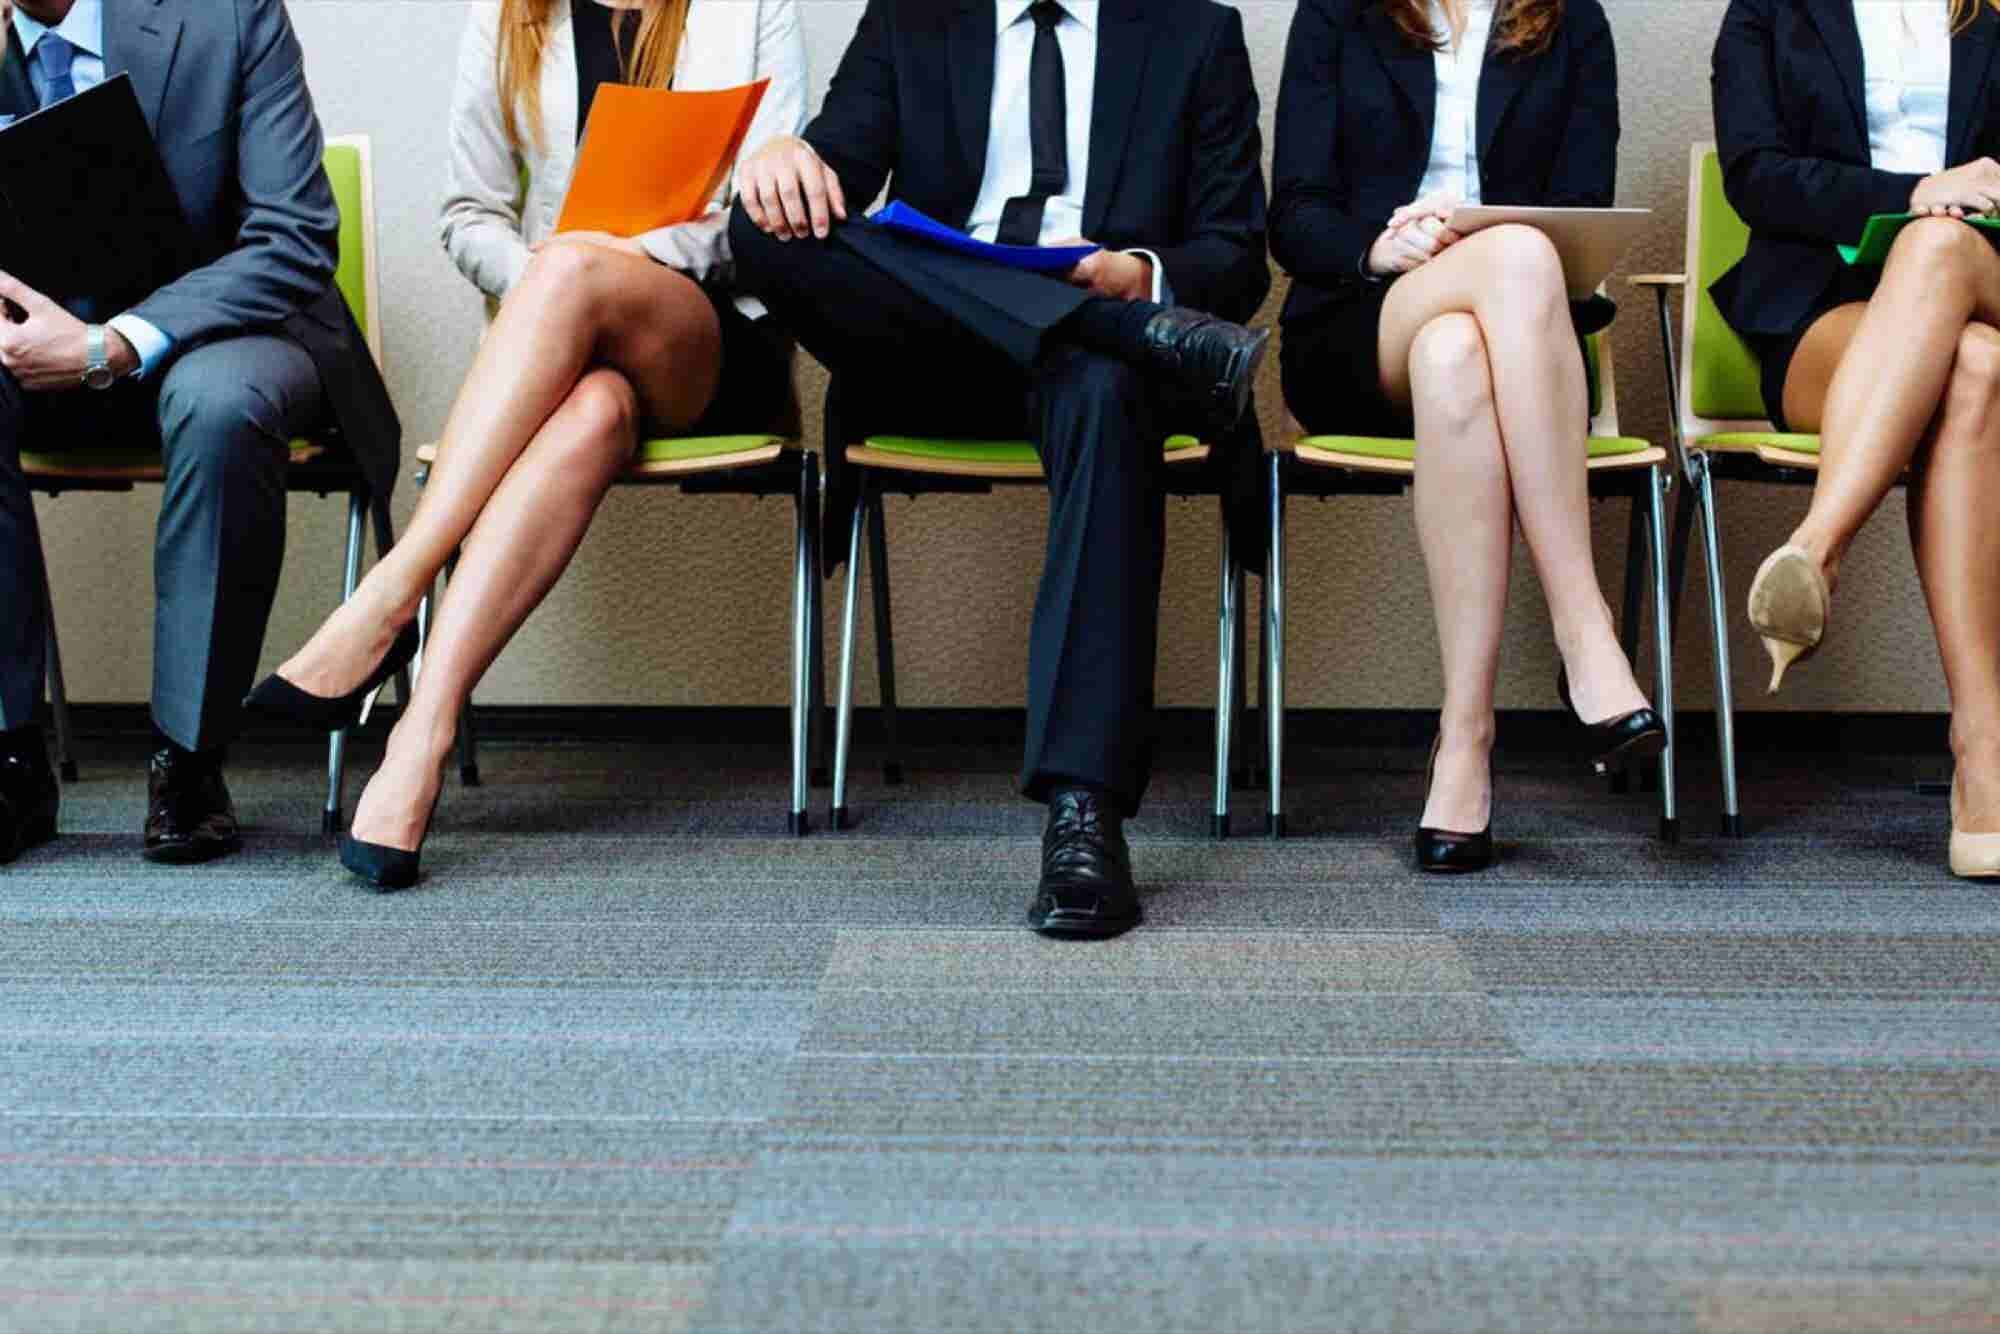 Startups, Share the Top Job Candidates You Turn Down